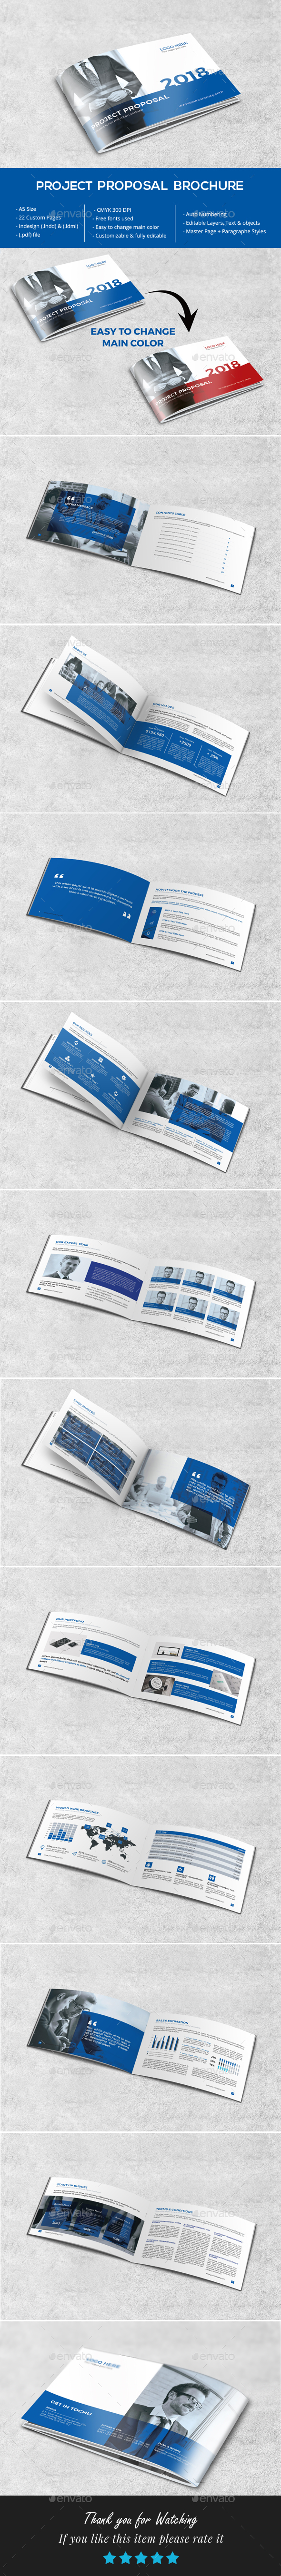 A5 Proposal Brochure - Brochures Print Templates